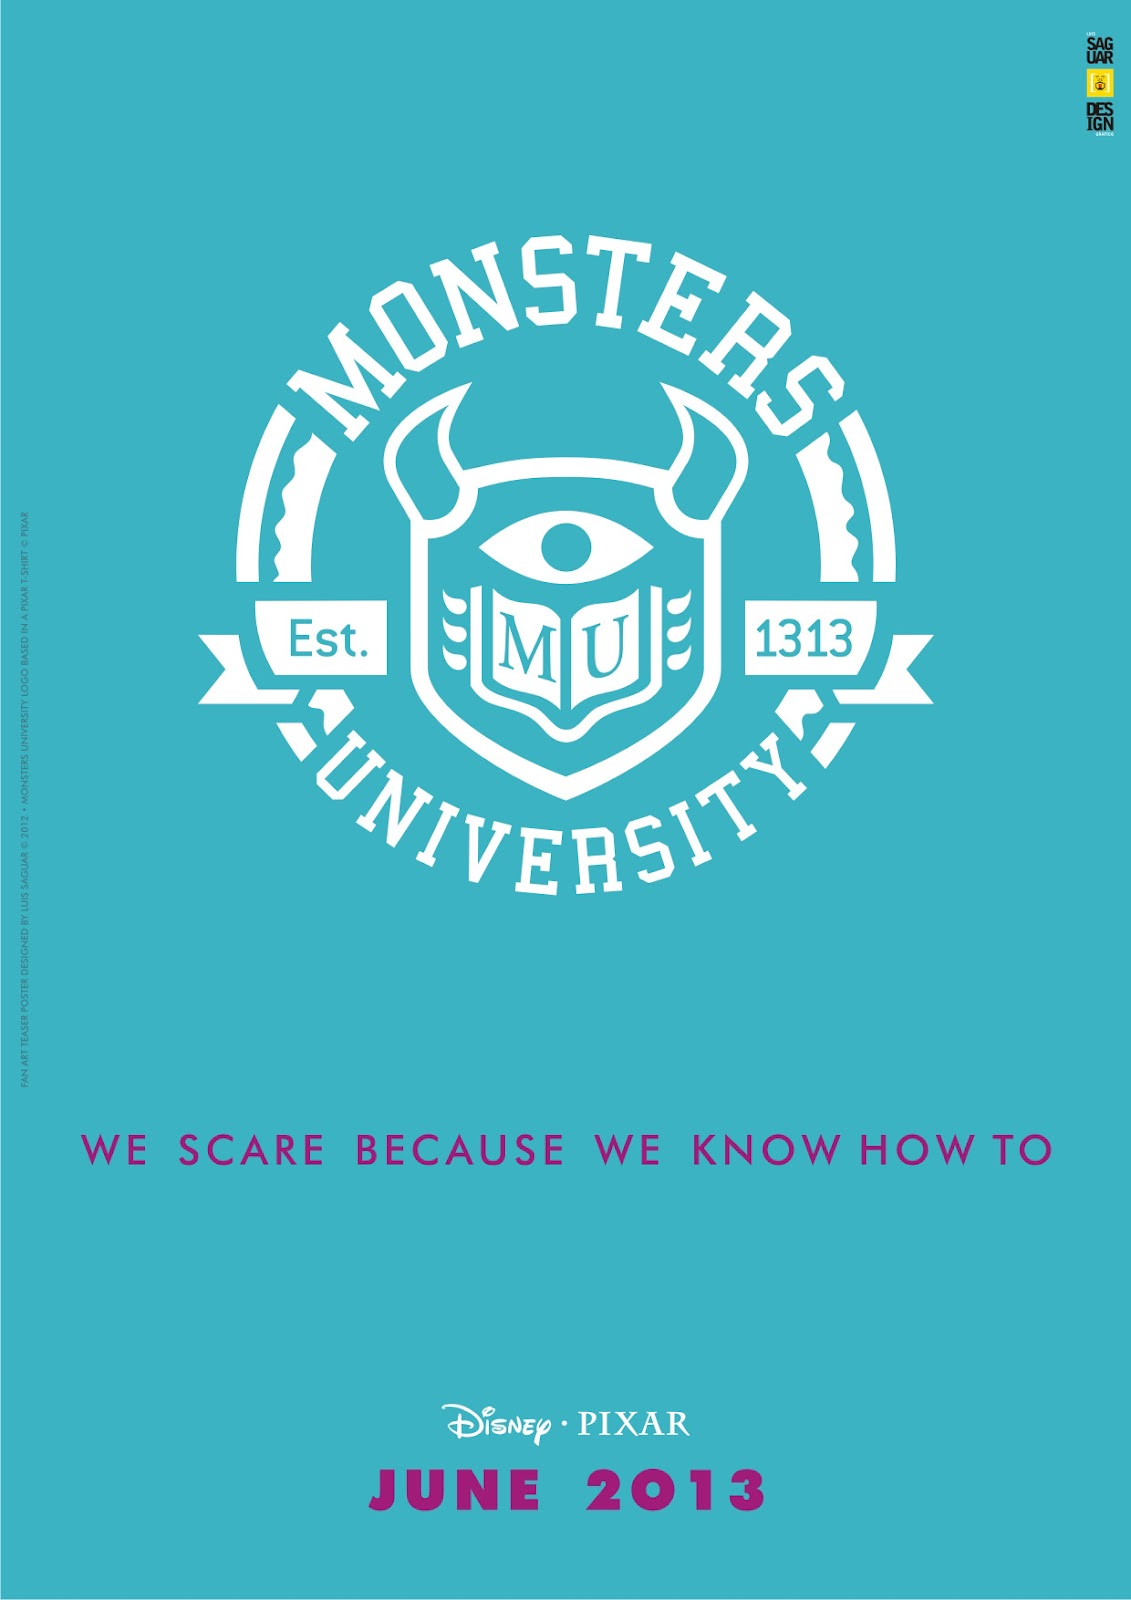 Pixar Planet Disney monstre academy university affiche fan